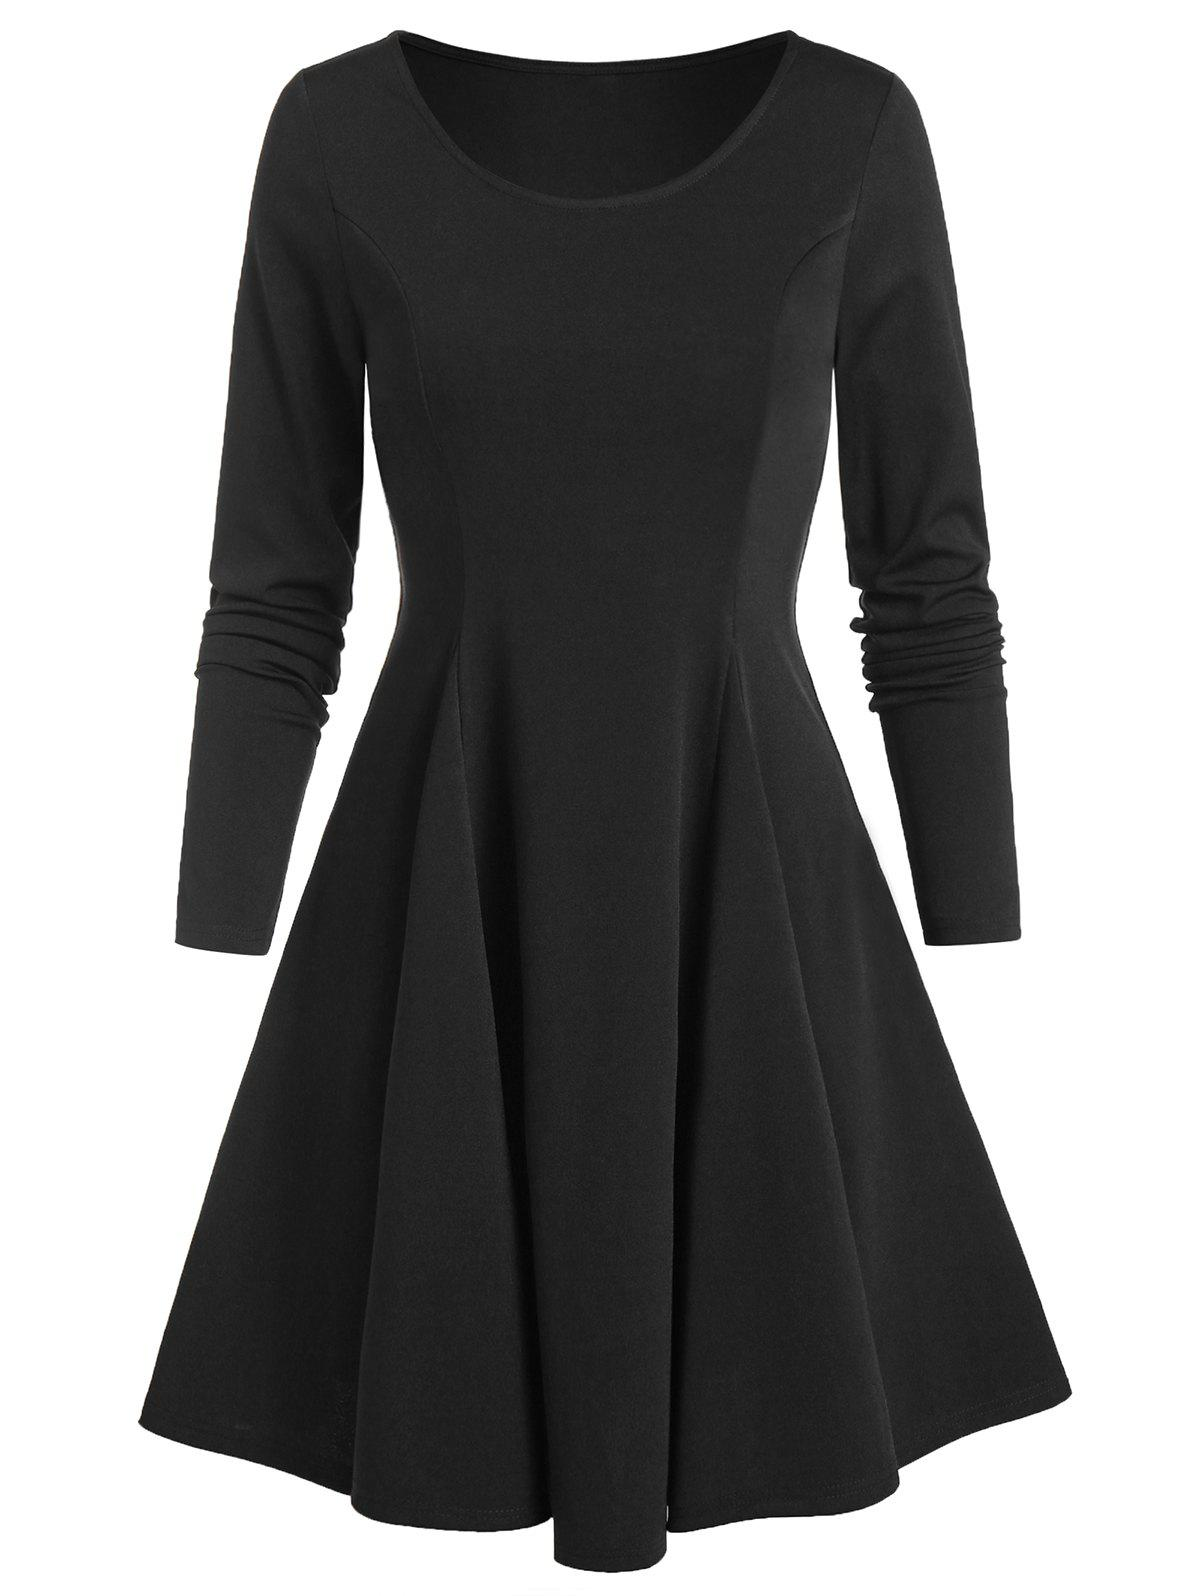 Long Sleeve Fit and Flare Plain Dress - BLACK L